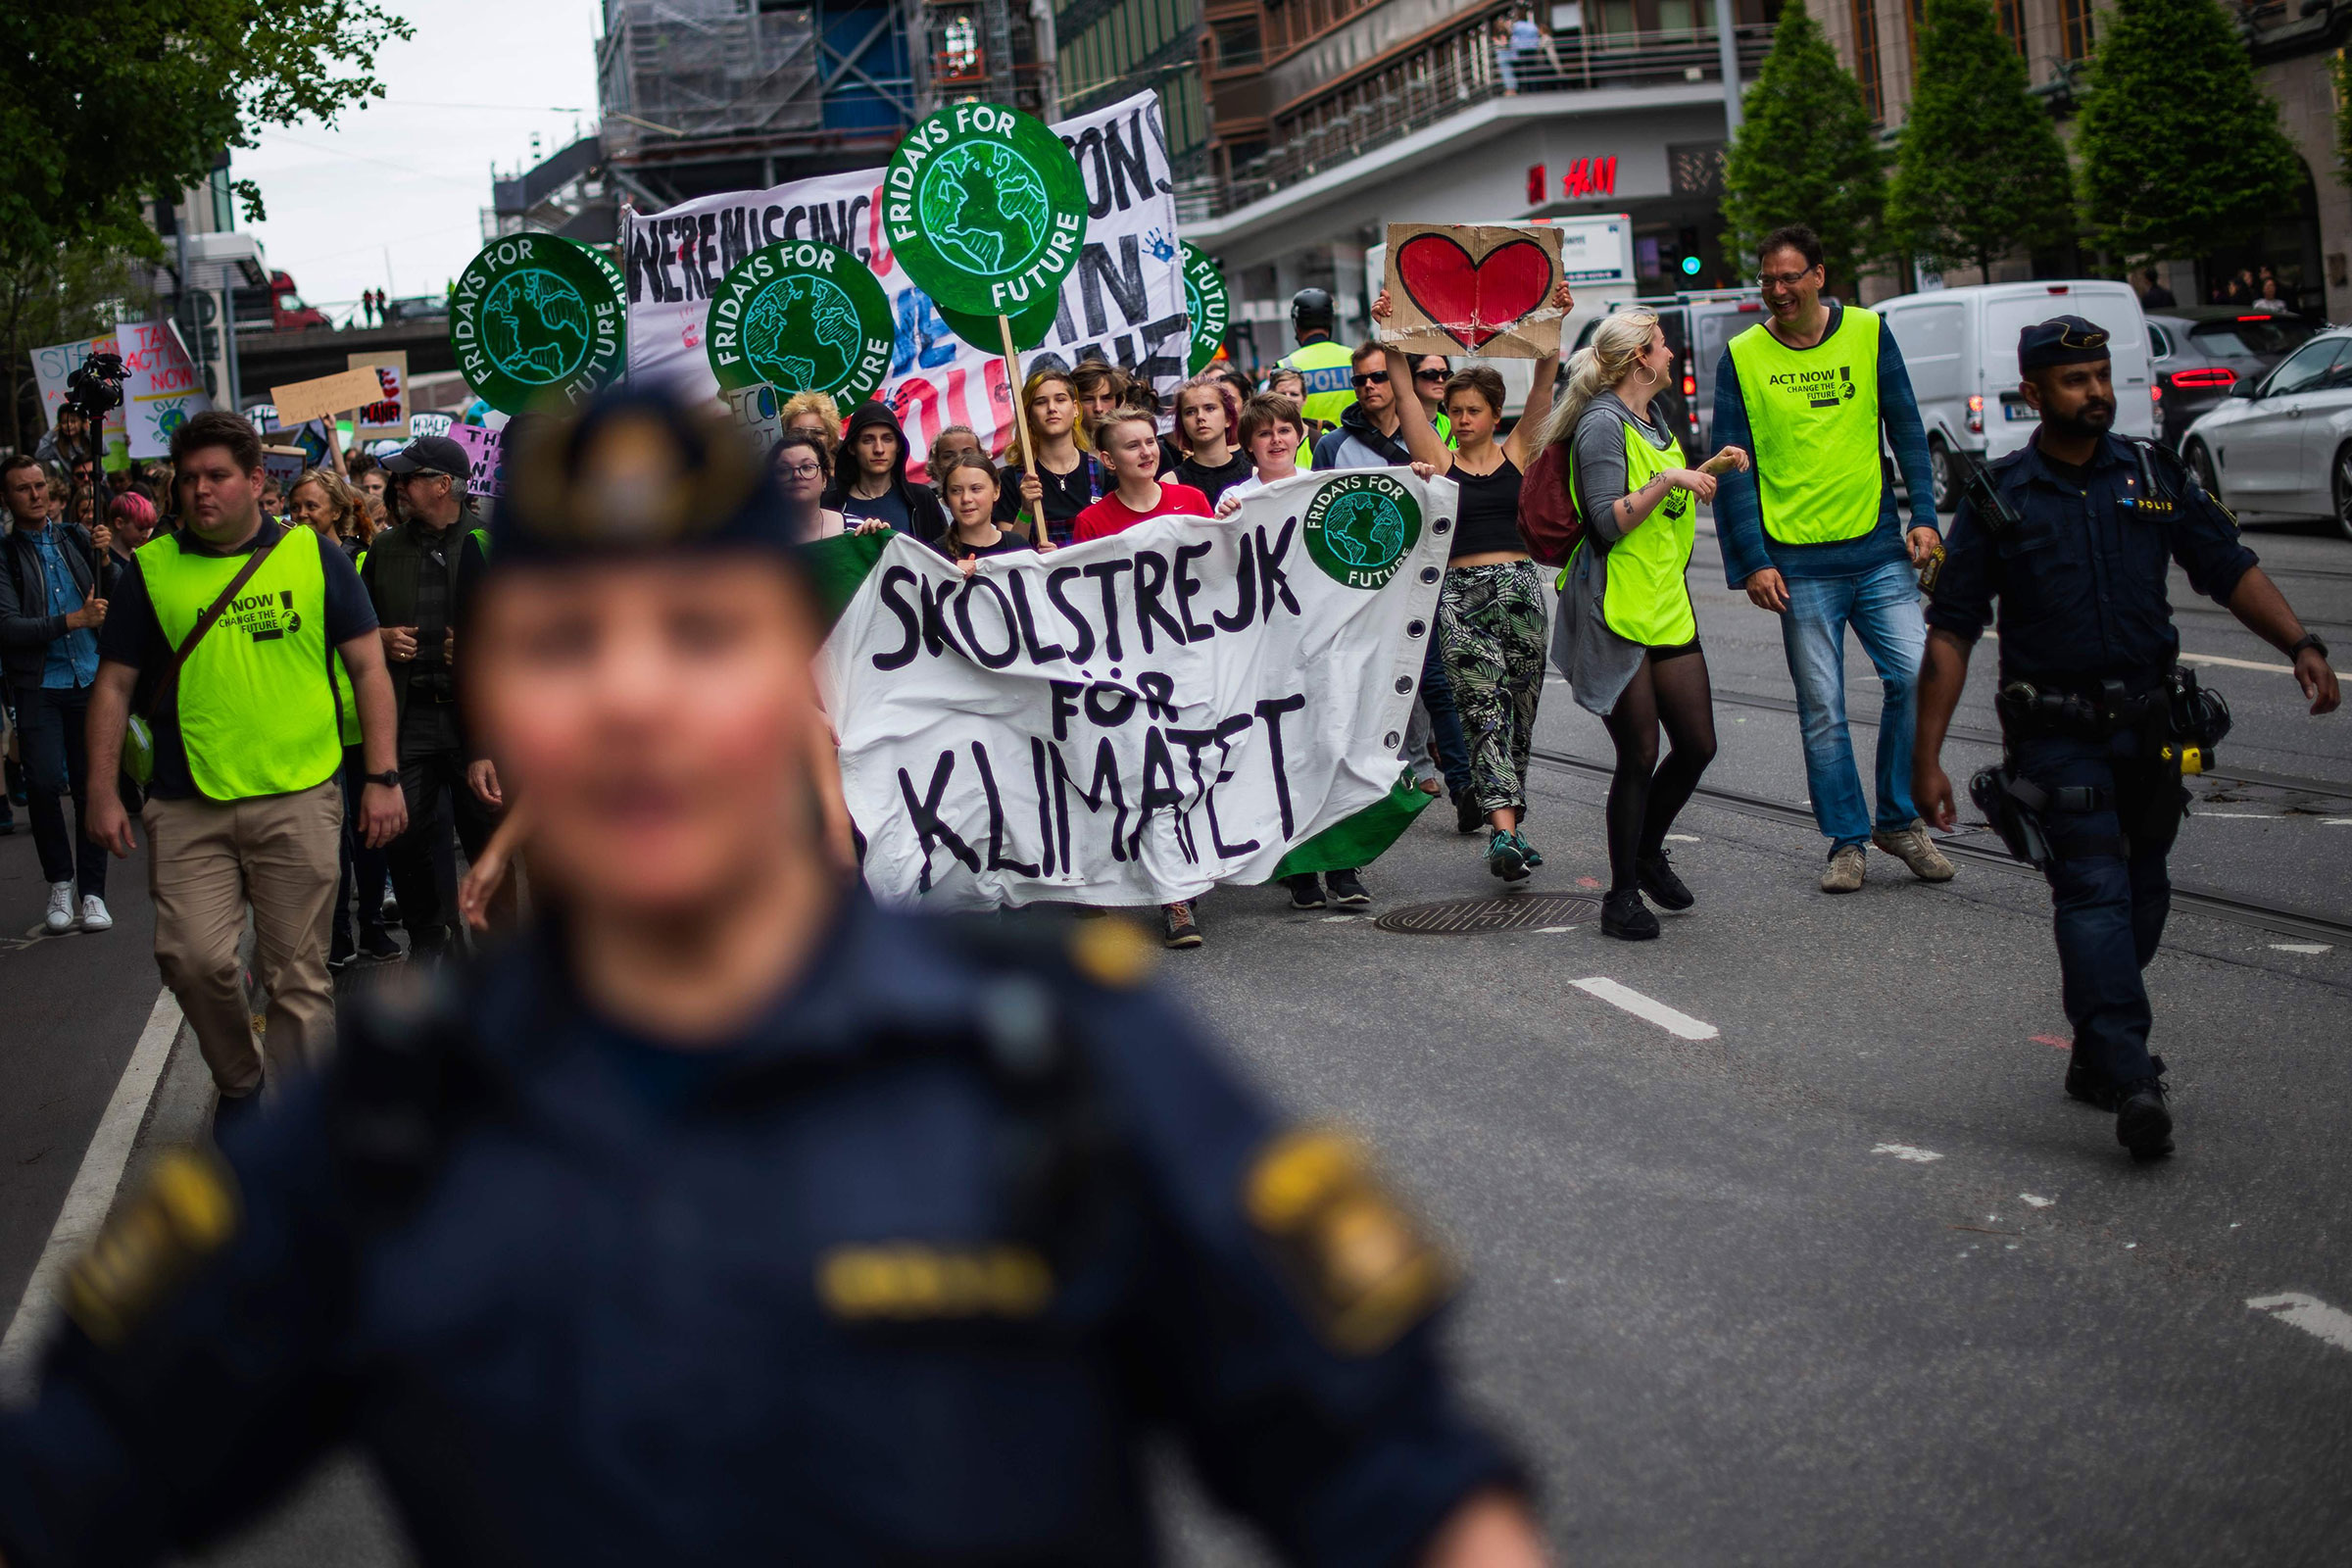 Greta Thunberg (2ndL behind the banner), the 16-year-old Swedish climate activist, marches during the  Global Strike For Future  movement on a global day of student protests aiming to spark world leaders into action on climate change in Stockholm, Sweden on May 24, 2019.